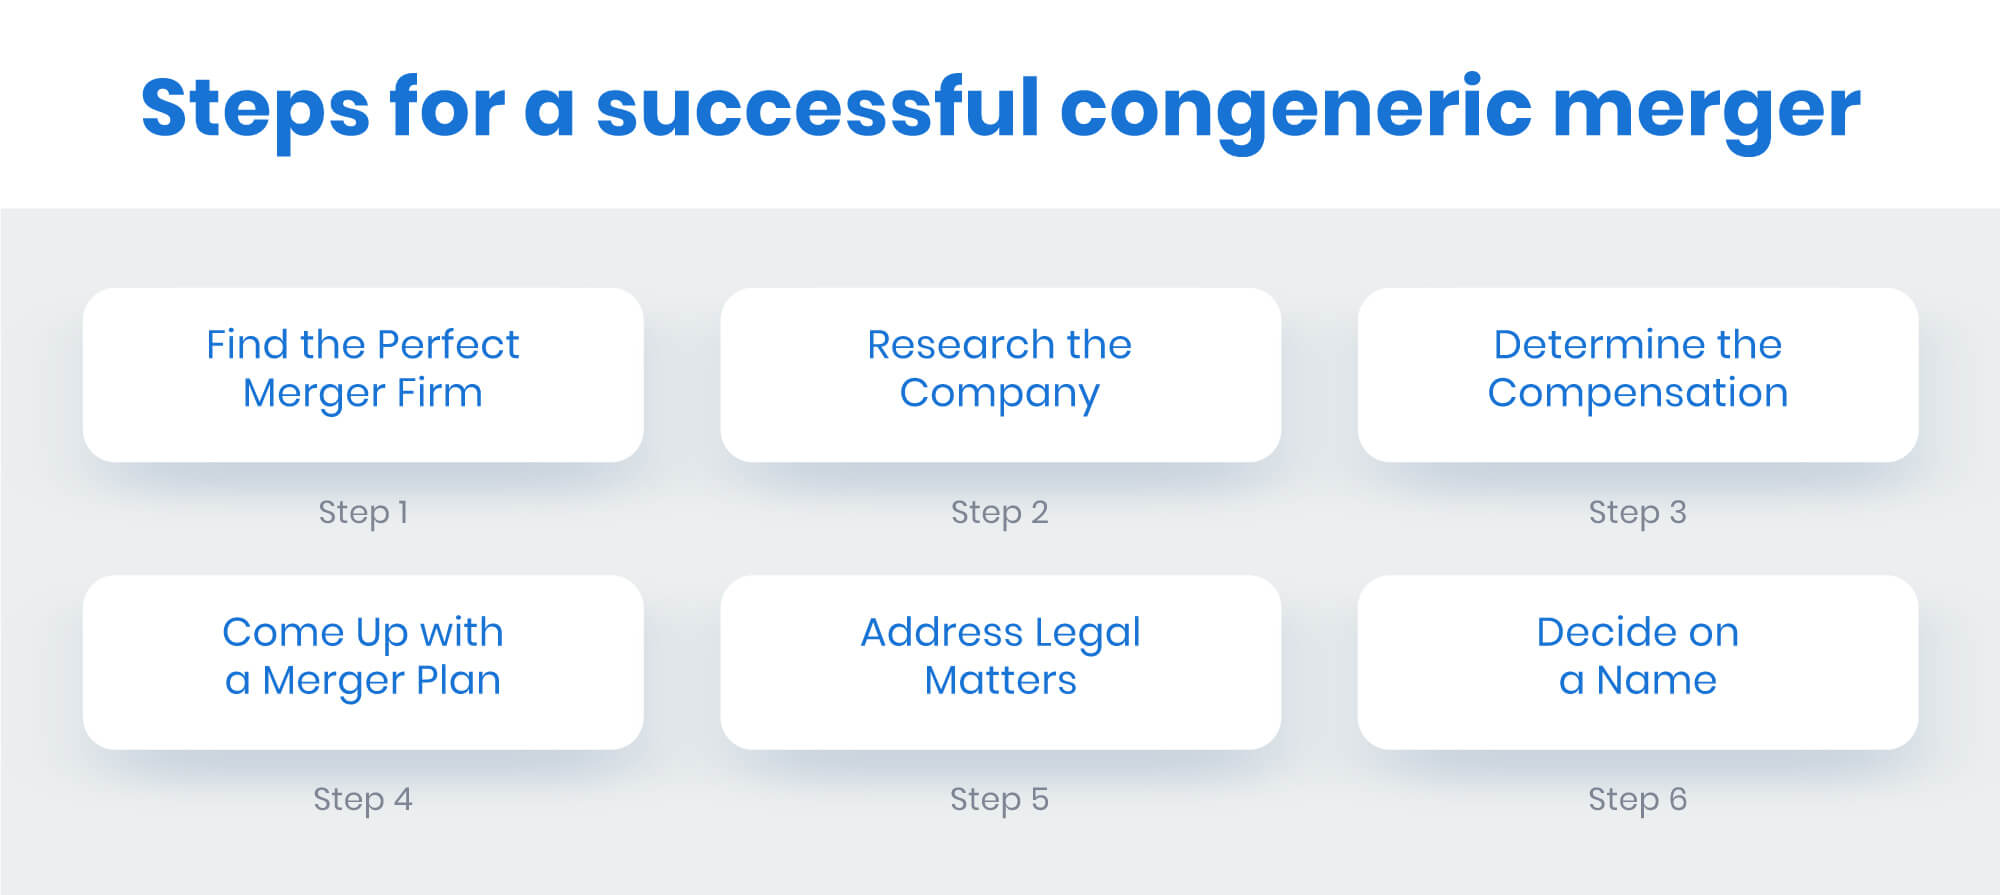 steps of successful congeneric merger